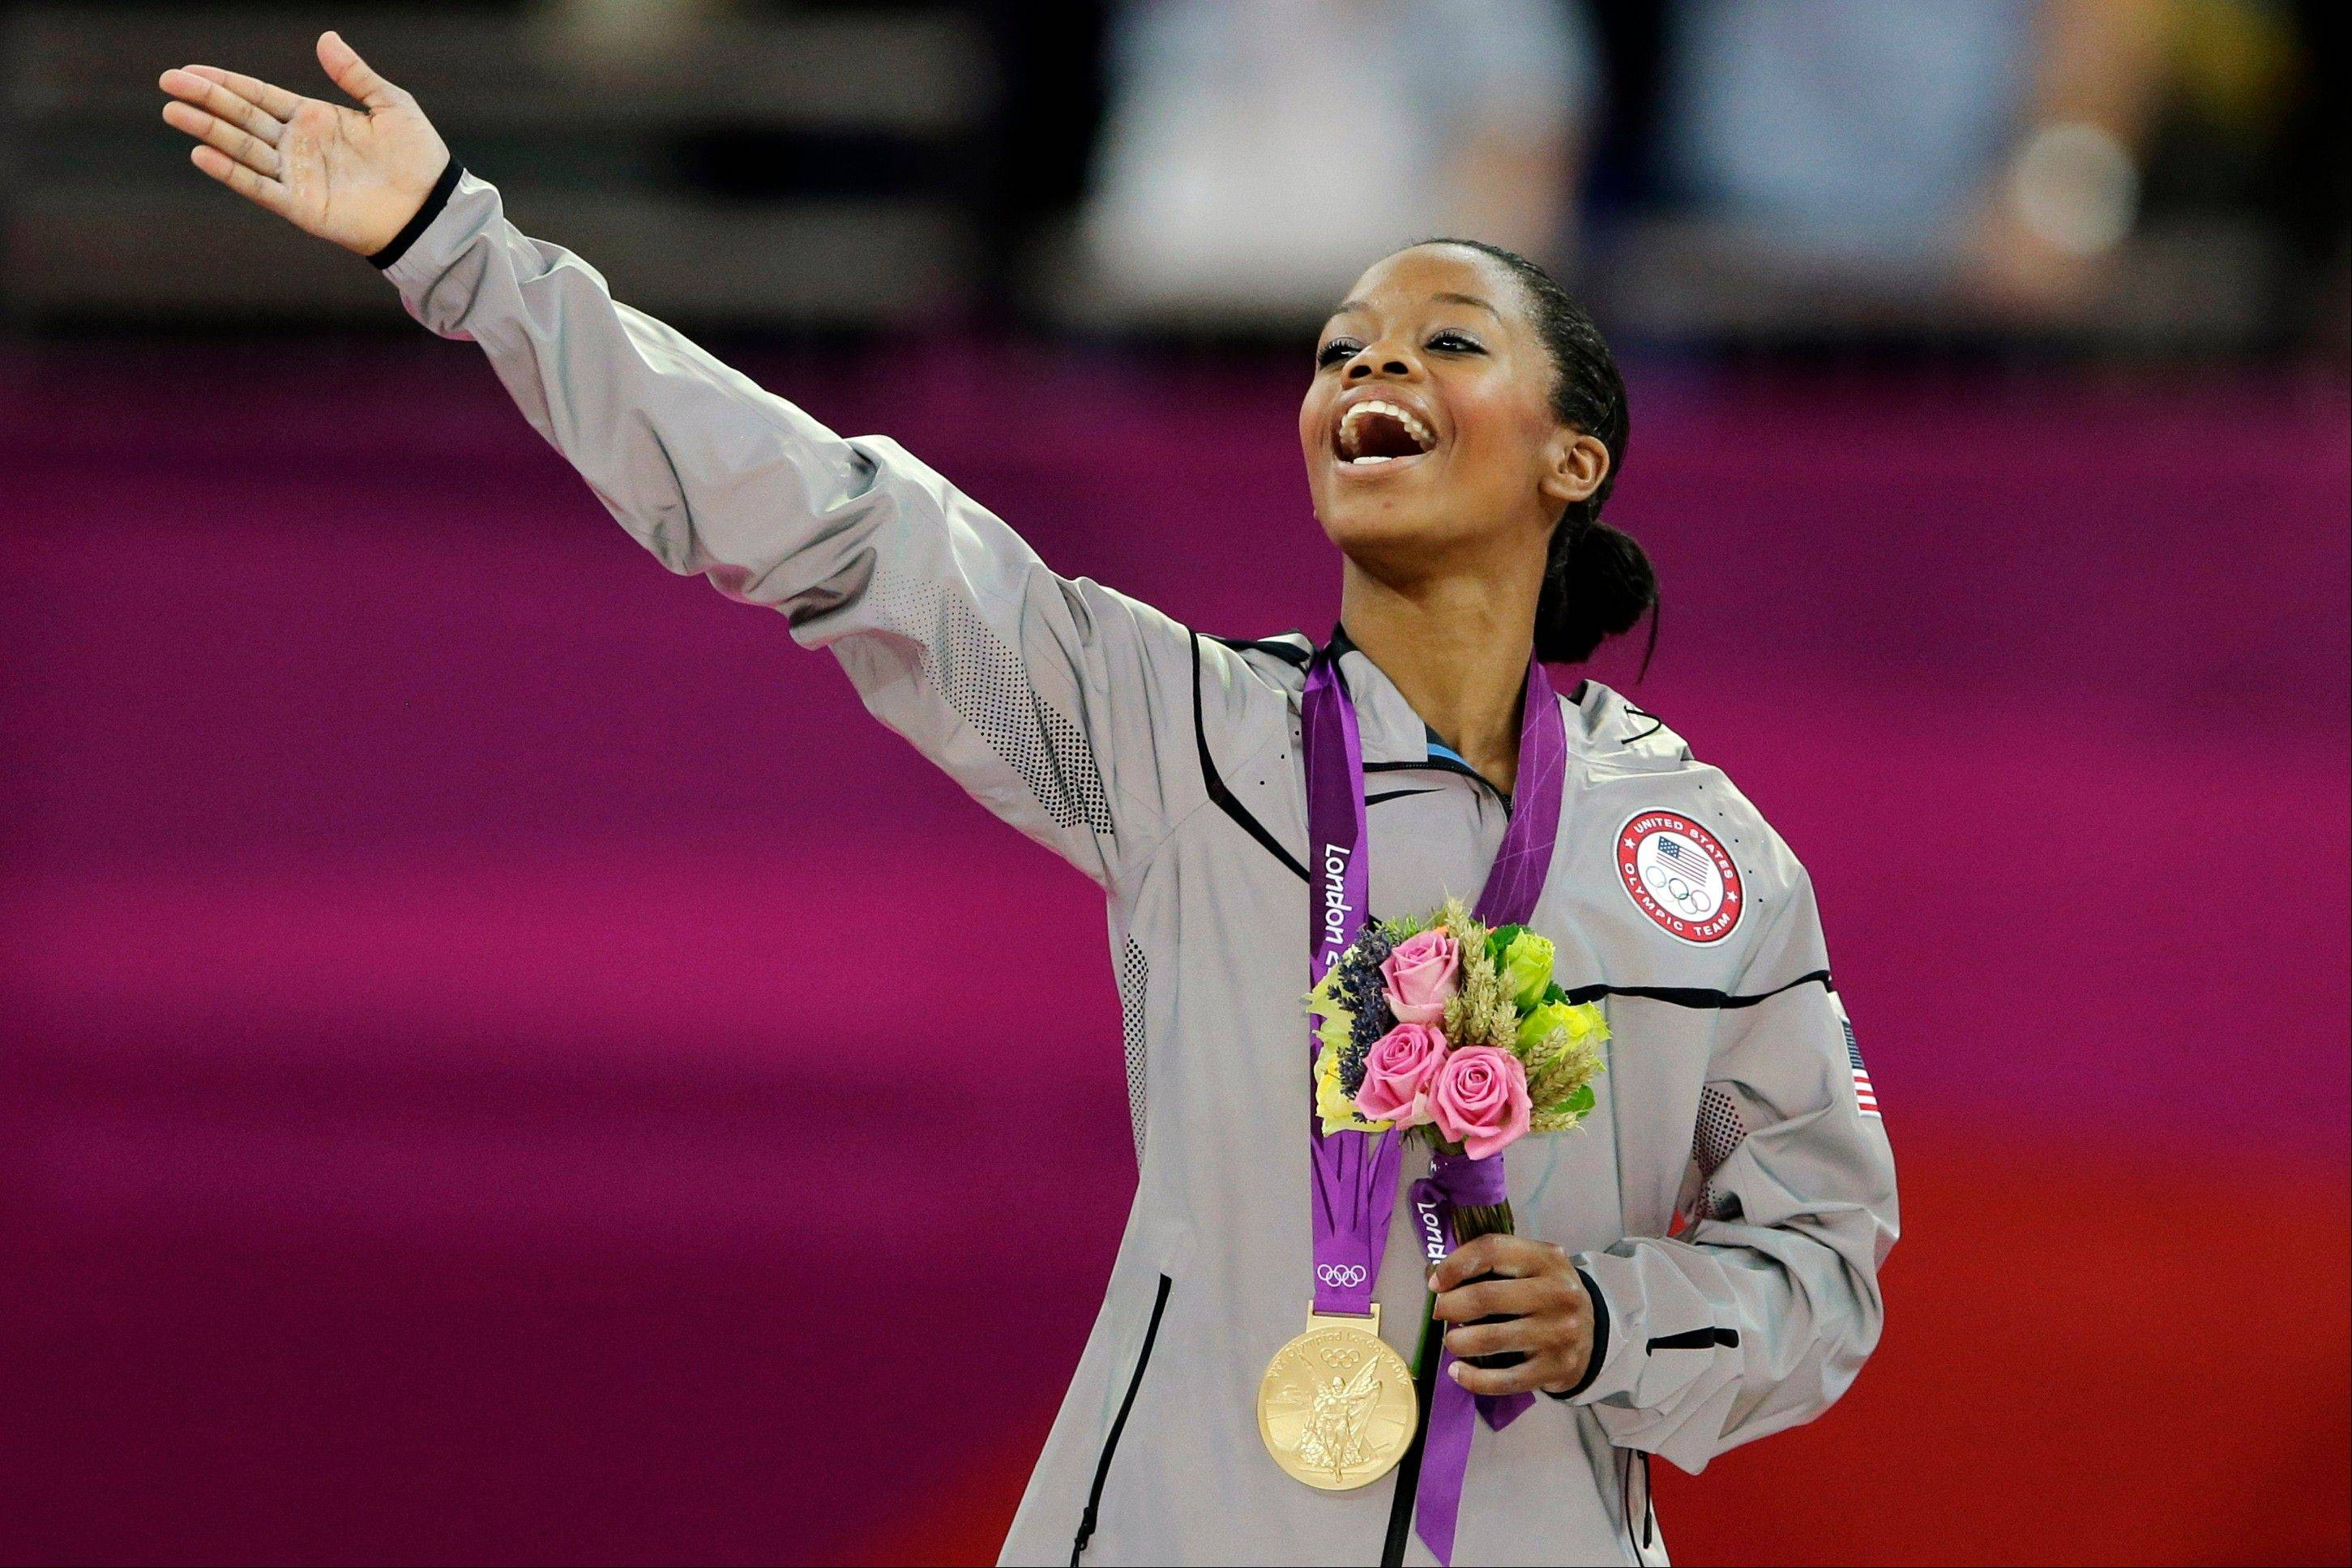 Gabrielle Douglas, the first African-American gymnast to claim the all-around Olympic title, is The Associated Press� 2012 female athlete of the year.